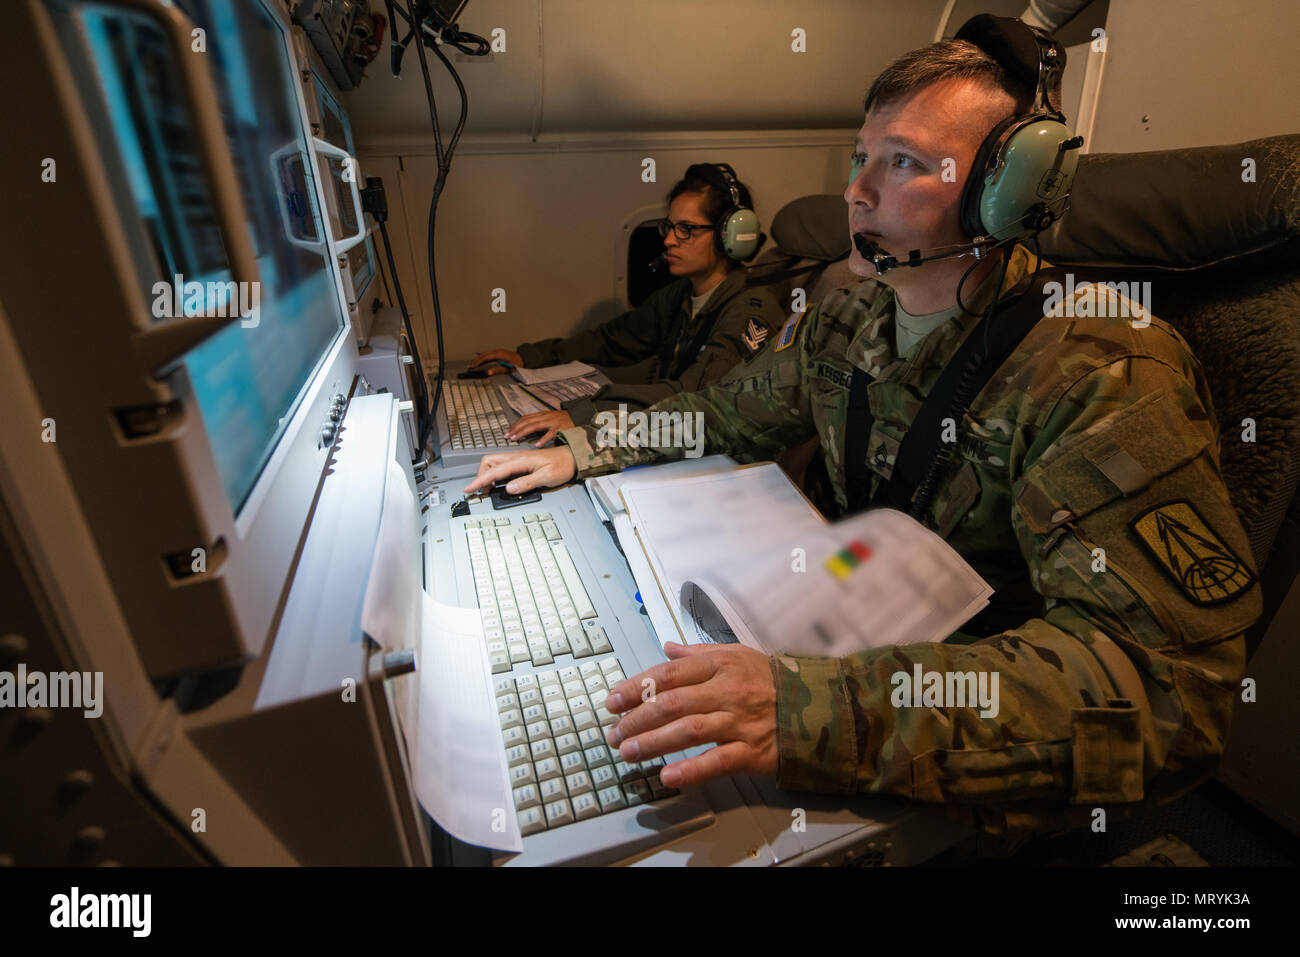 C2 Isr Stock Photos & C2 Isr Stock Images - Alamy